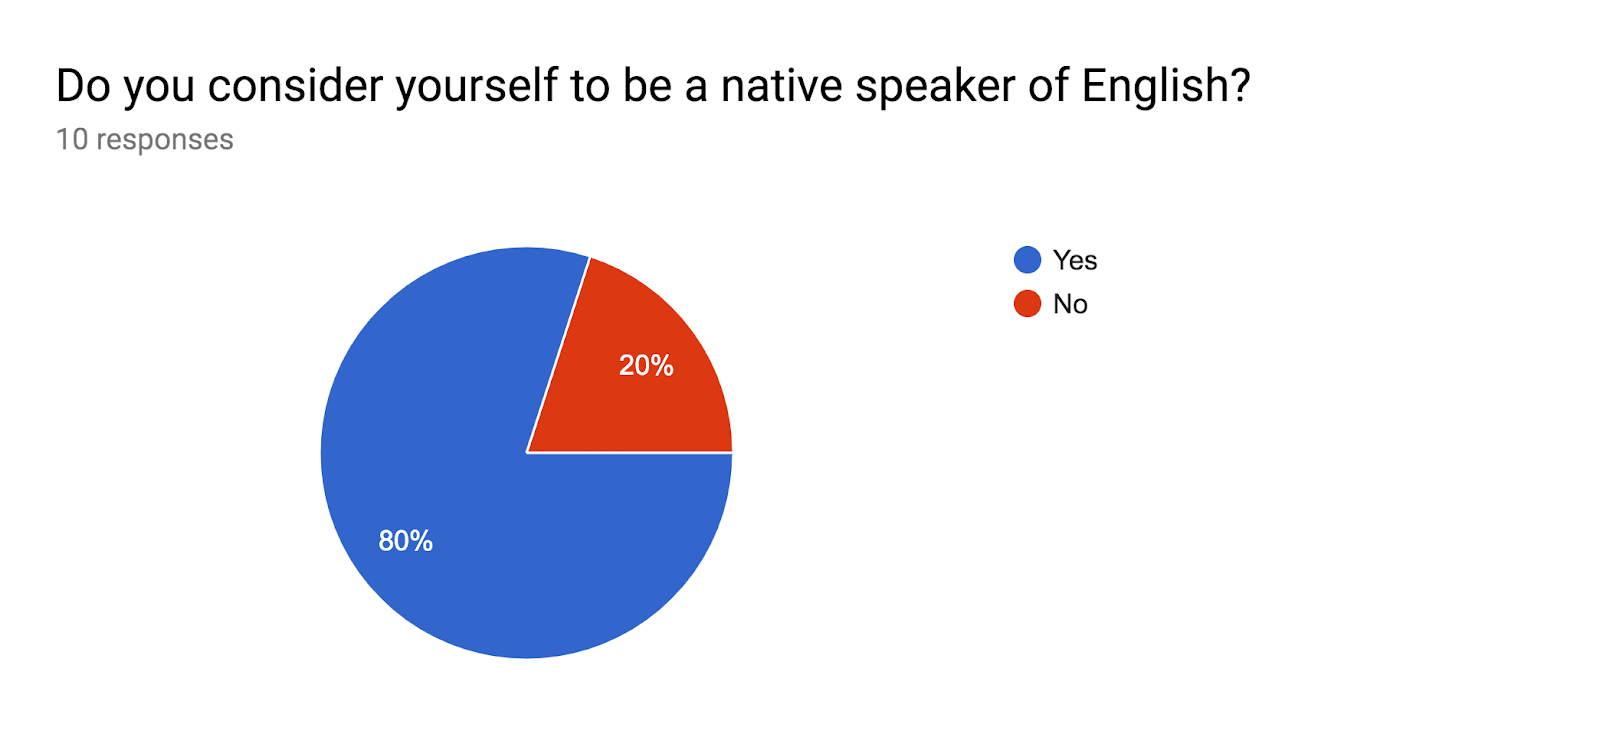 Forms response chart. Question title: Do you consider yourself to be a native speaker of English?. Number of responses: 10 responses.